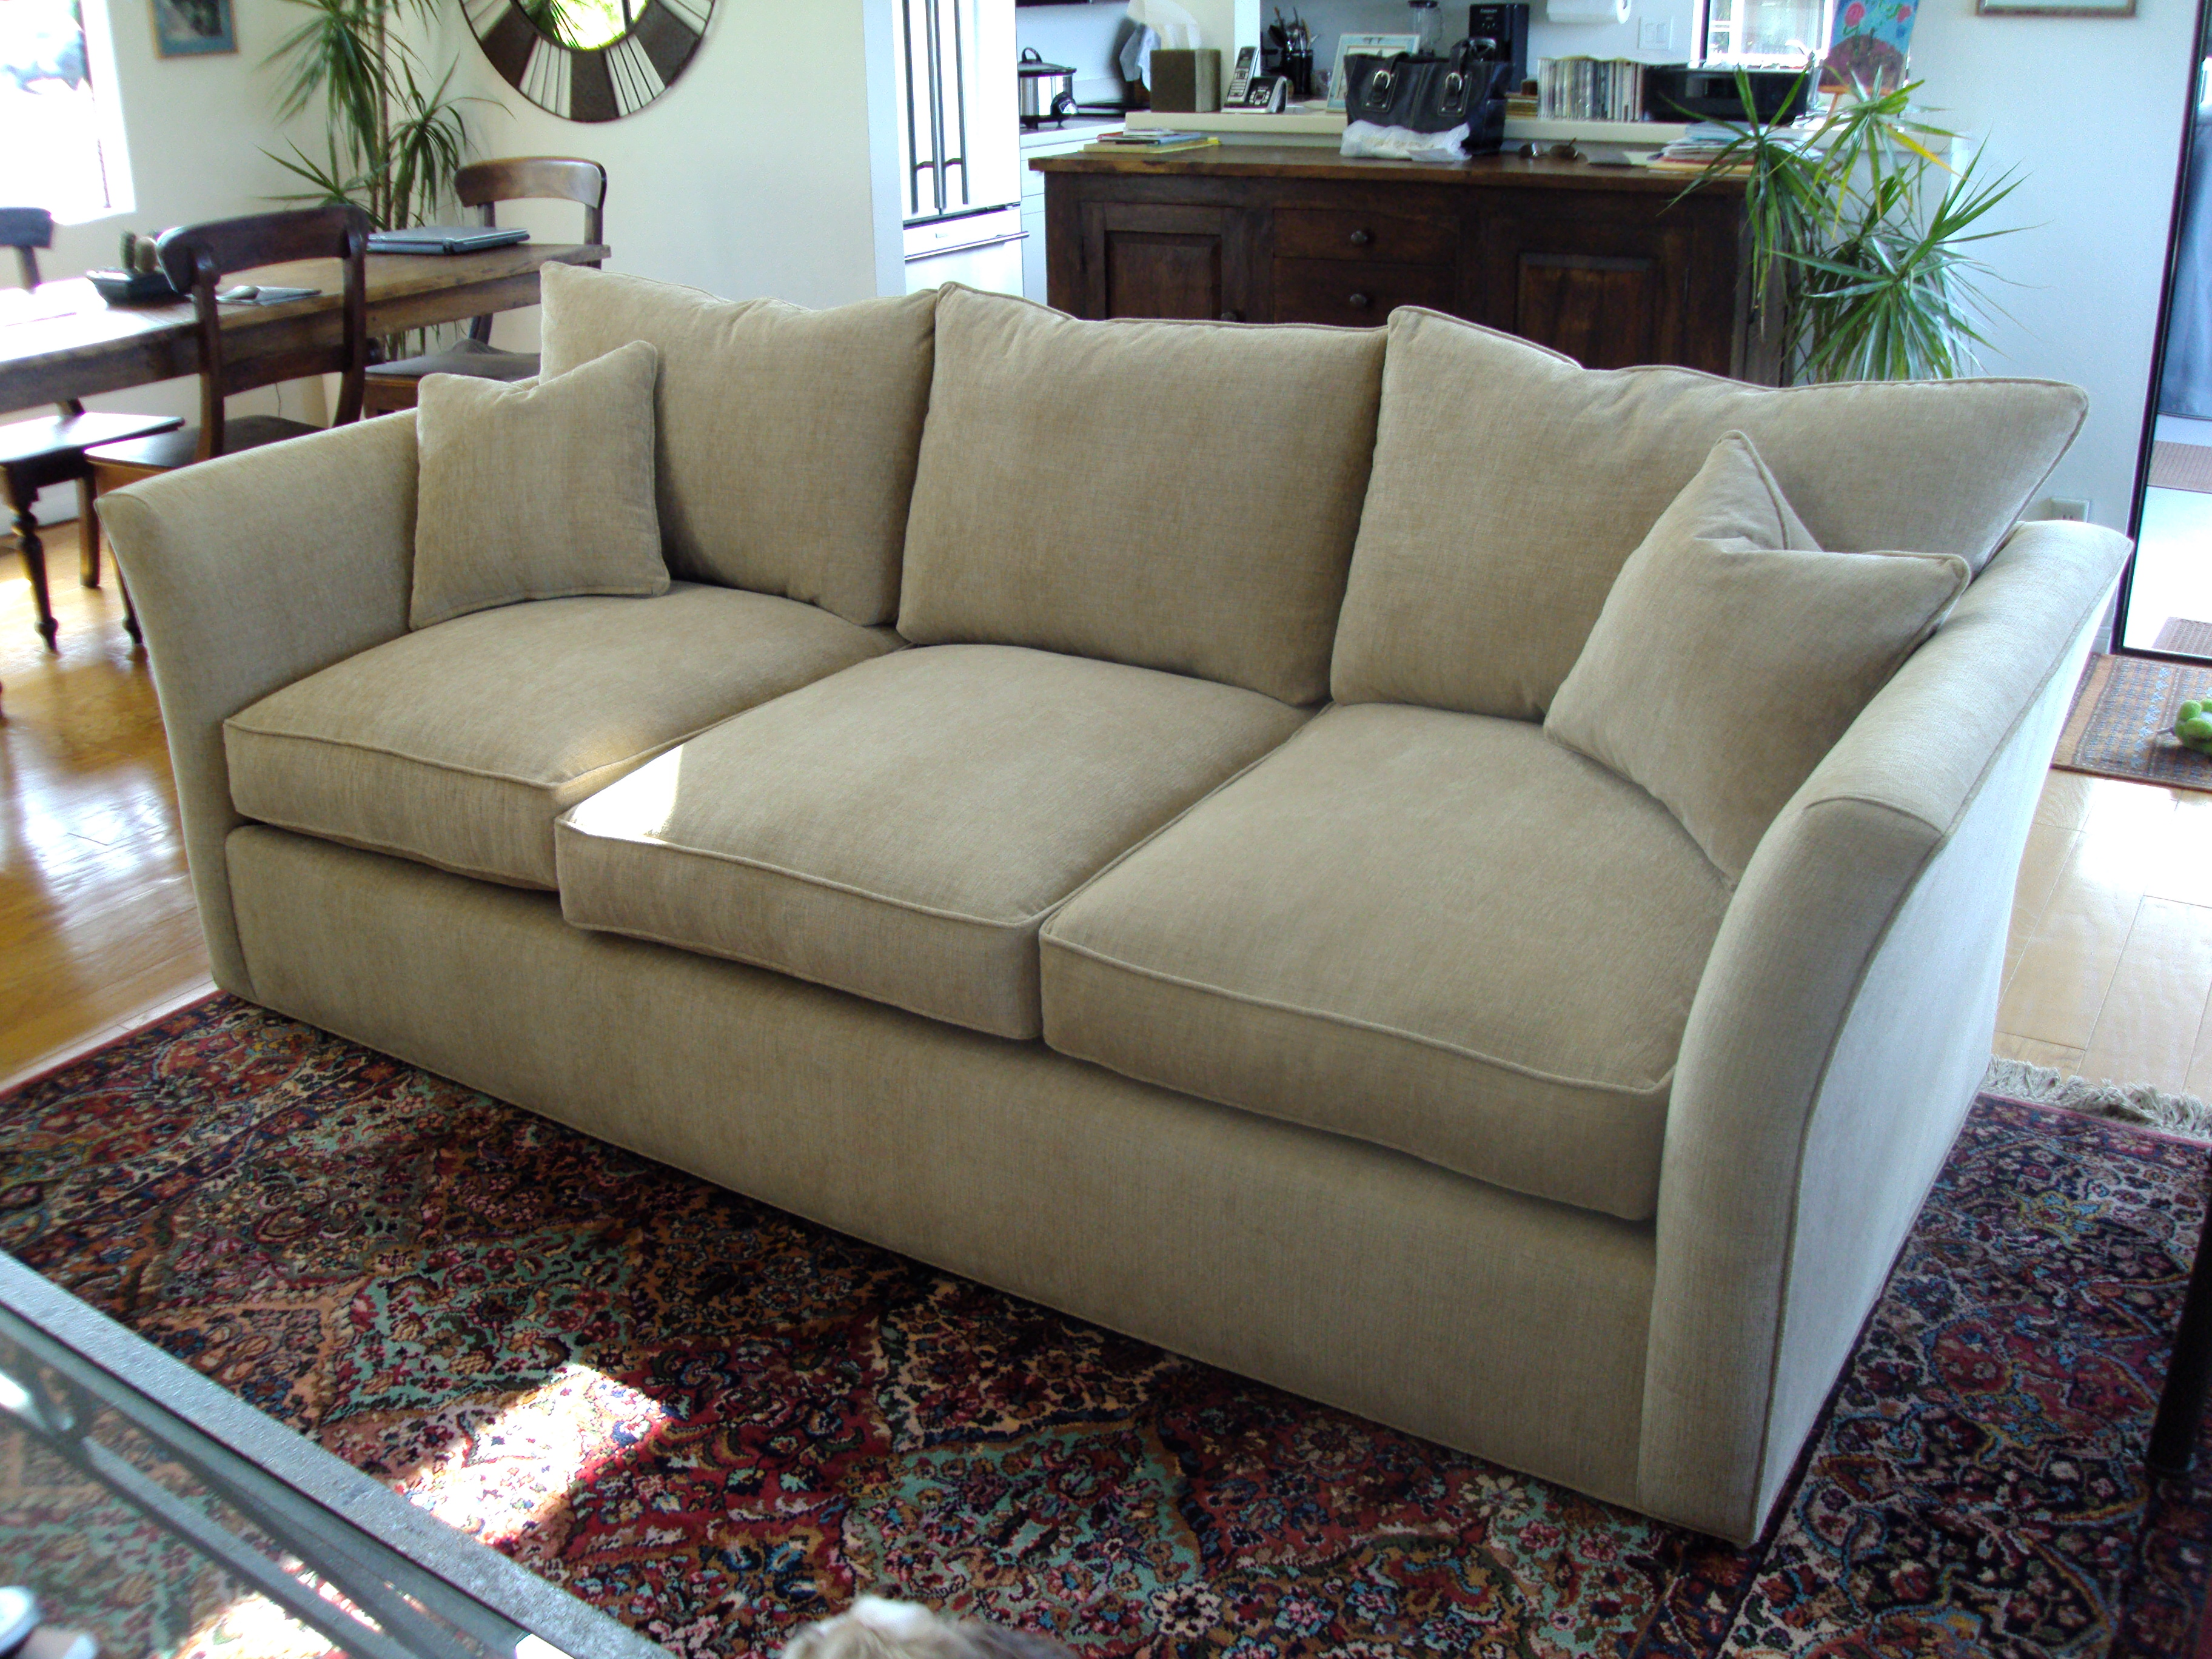 Upholster Leather Sofa